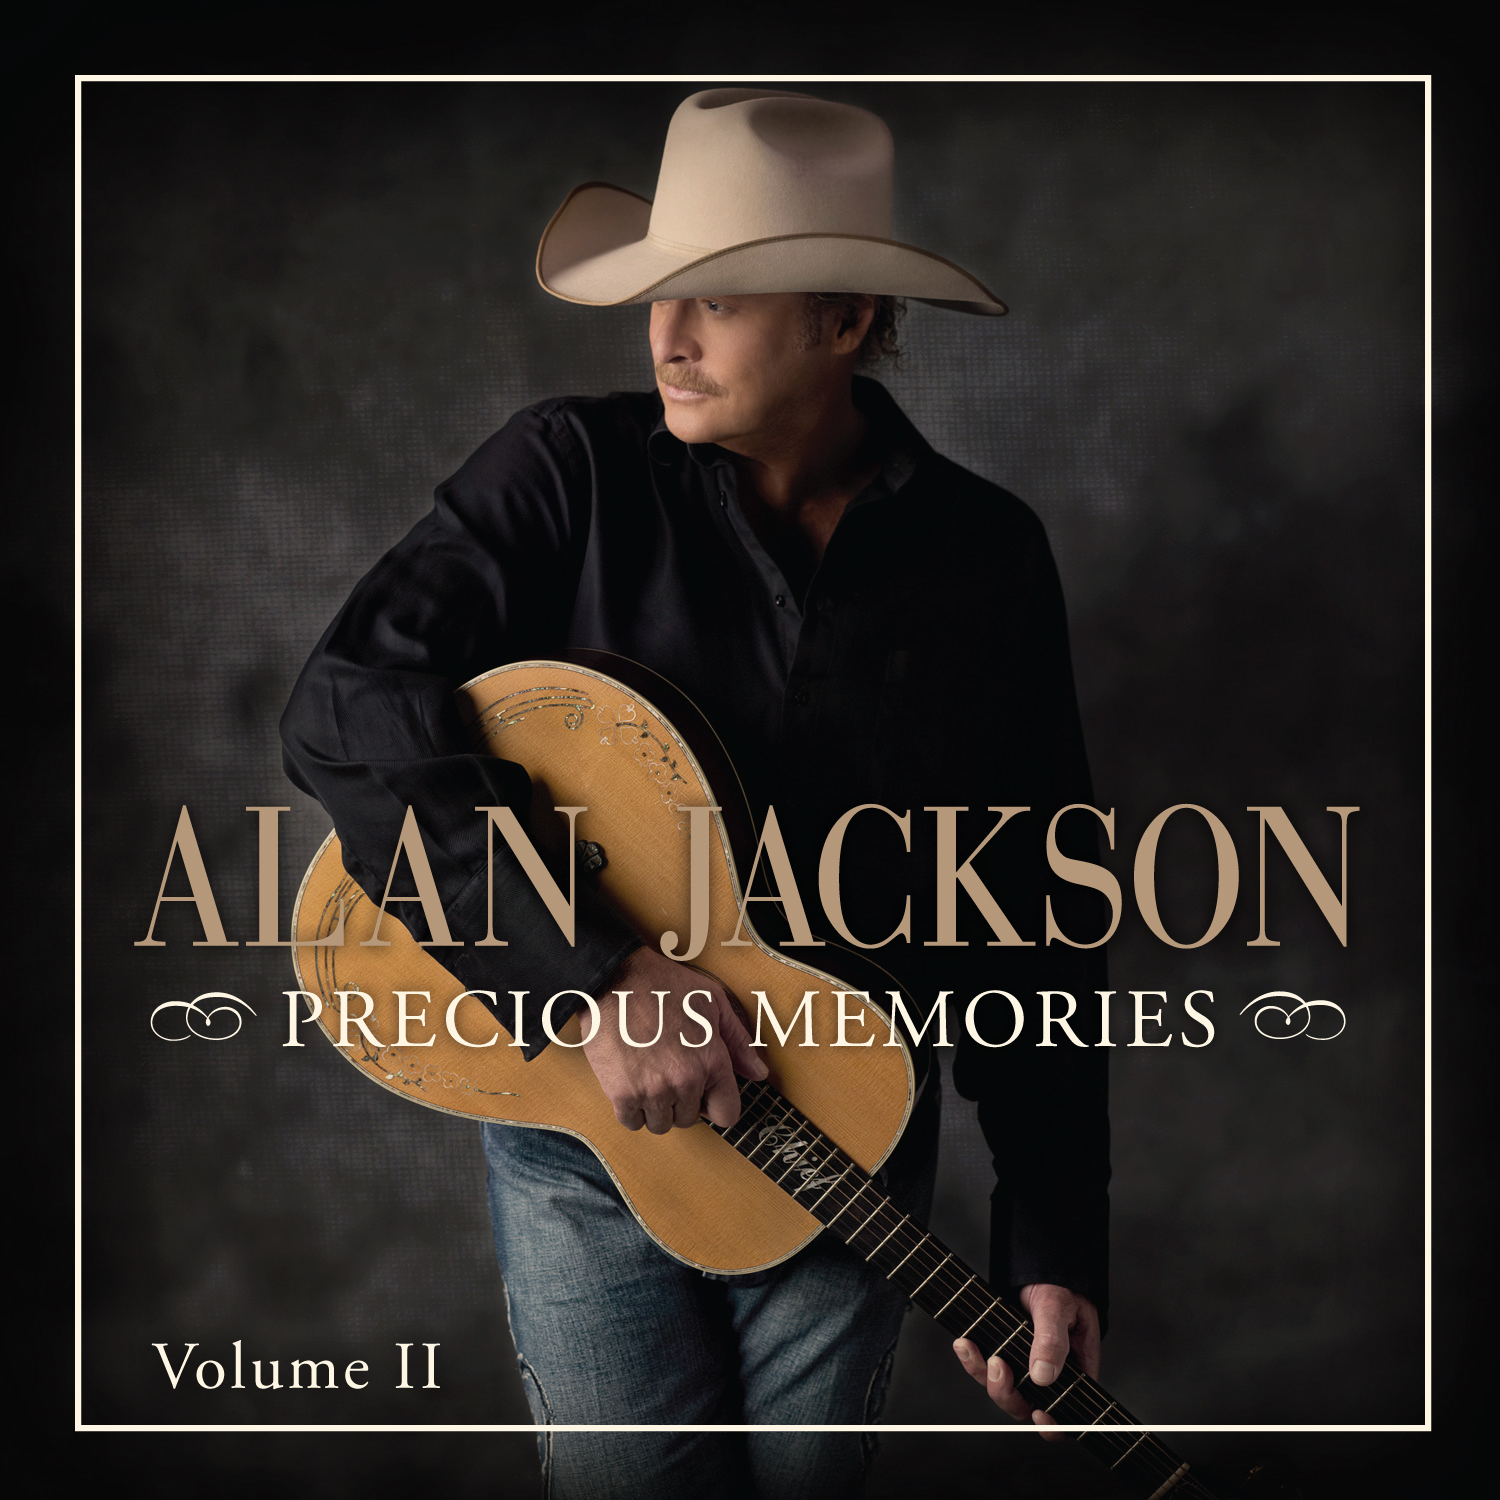 Alan Jackson - Precious Memories II 2013 English Christian Album Download